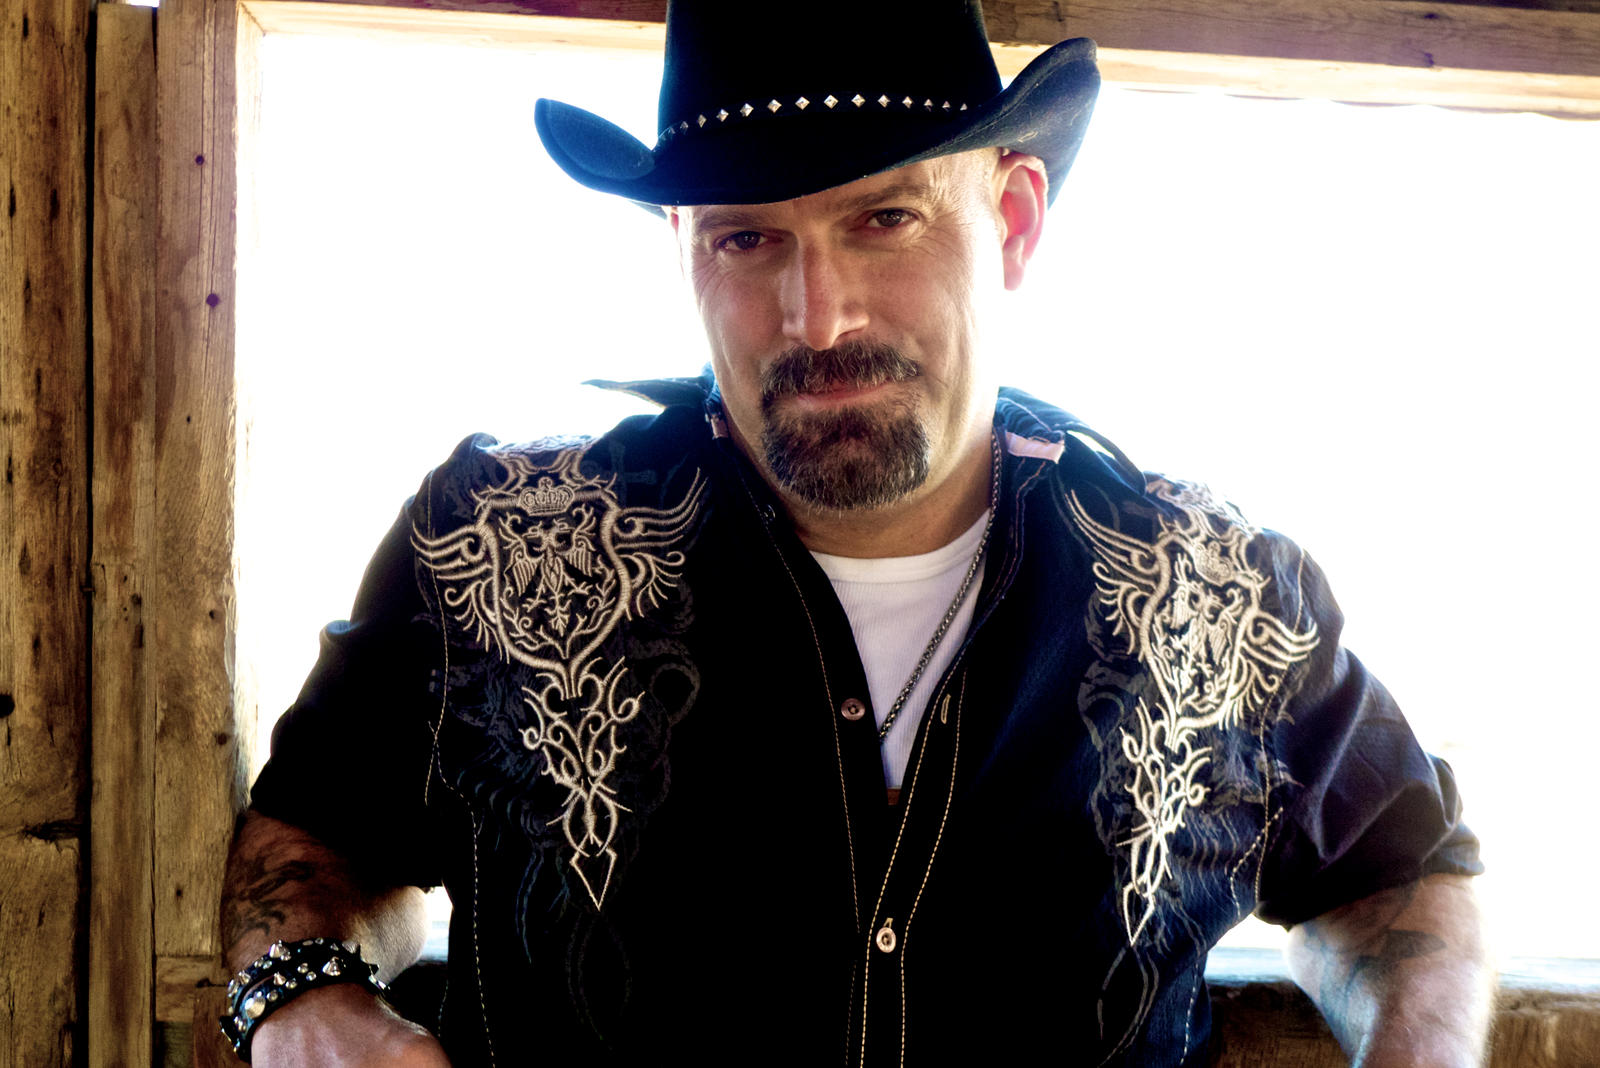 Todd Richard  is BC Country Music associations 'Humanitarian of the Year in 2017 & again in 2018, two time CBC Searchlight semi-finalist , Todd has shared the stage with many of country music's top acts, including Dwight Yoakum, Dierks Bentley, Gord Bamford, Aaron Goodvin and rock legend Randy Bachman to name a few.